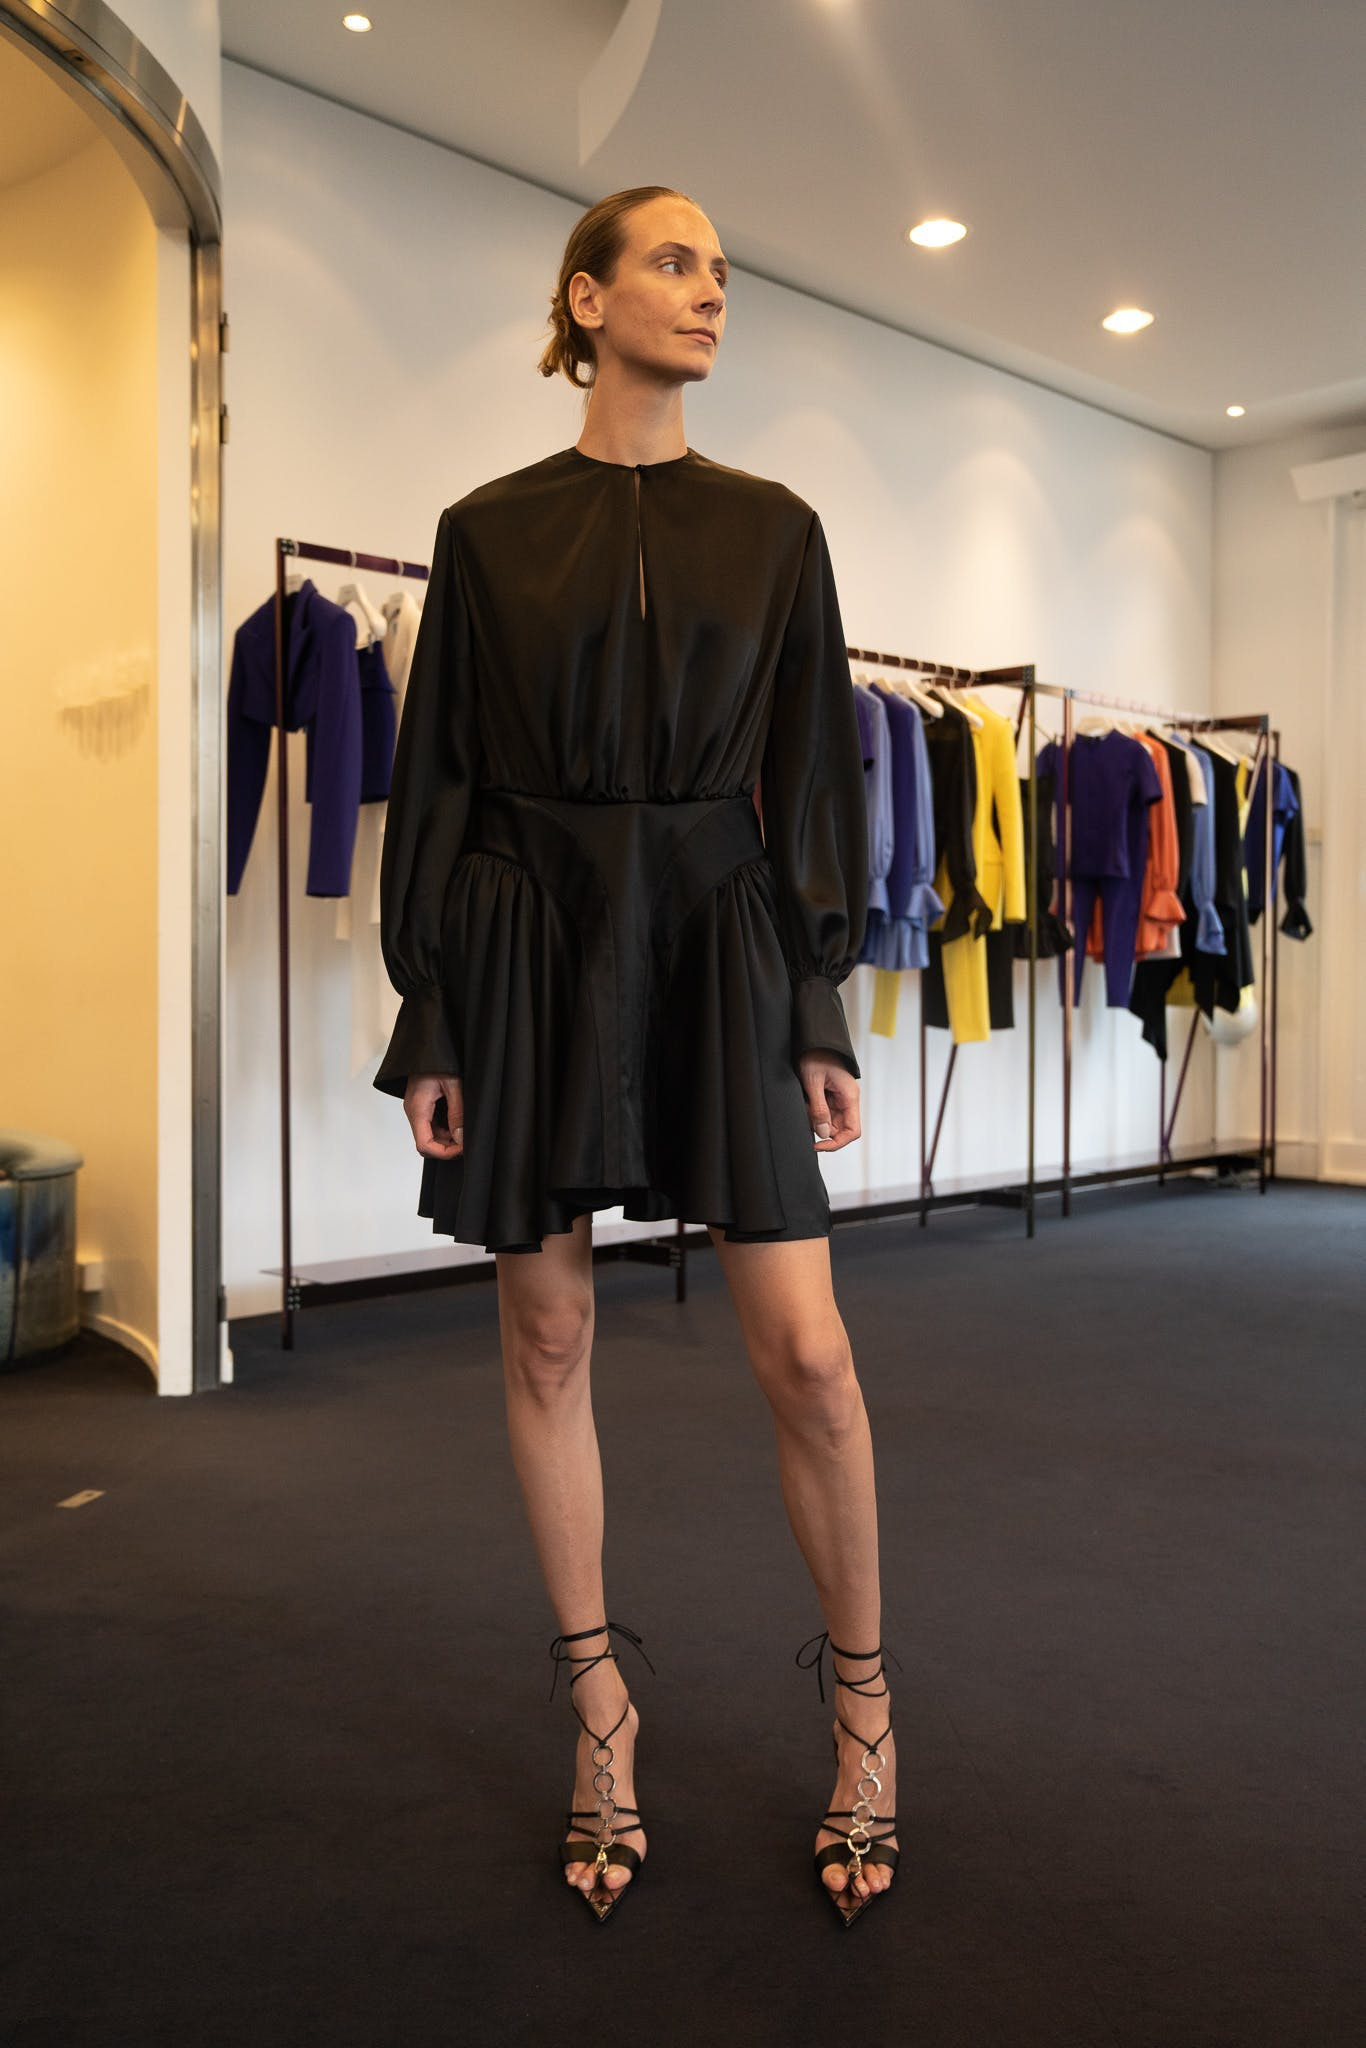 Mugler Showroom Keyhole Long Sleeve Ruffle Mini Dress in Black Tie Up Wrap Heels in Black Spring 20 RTW